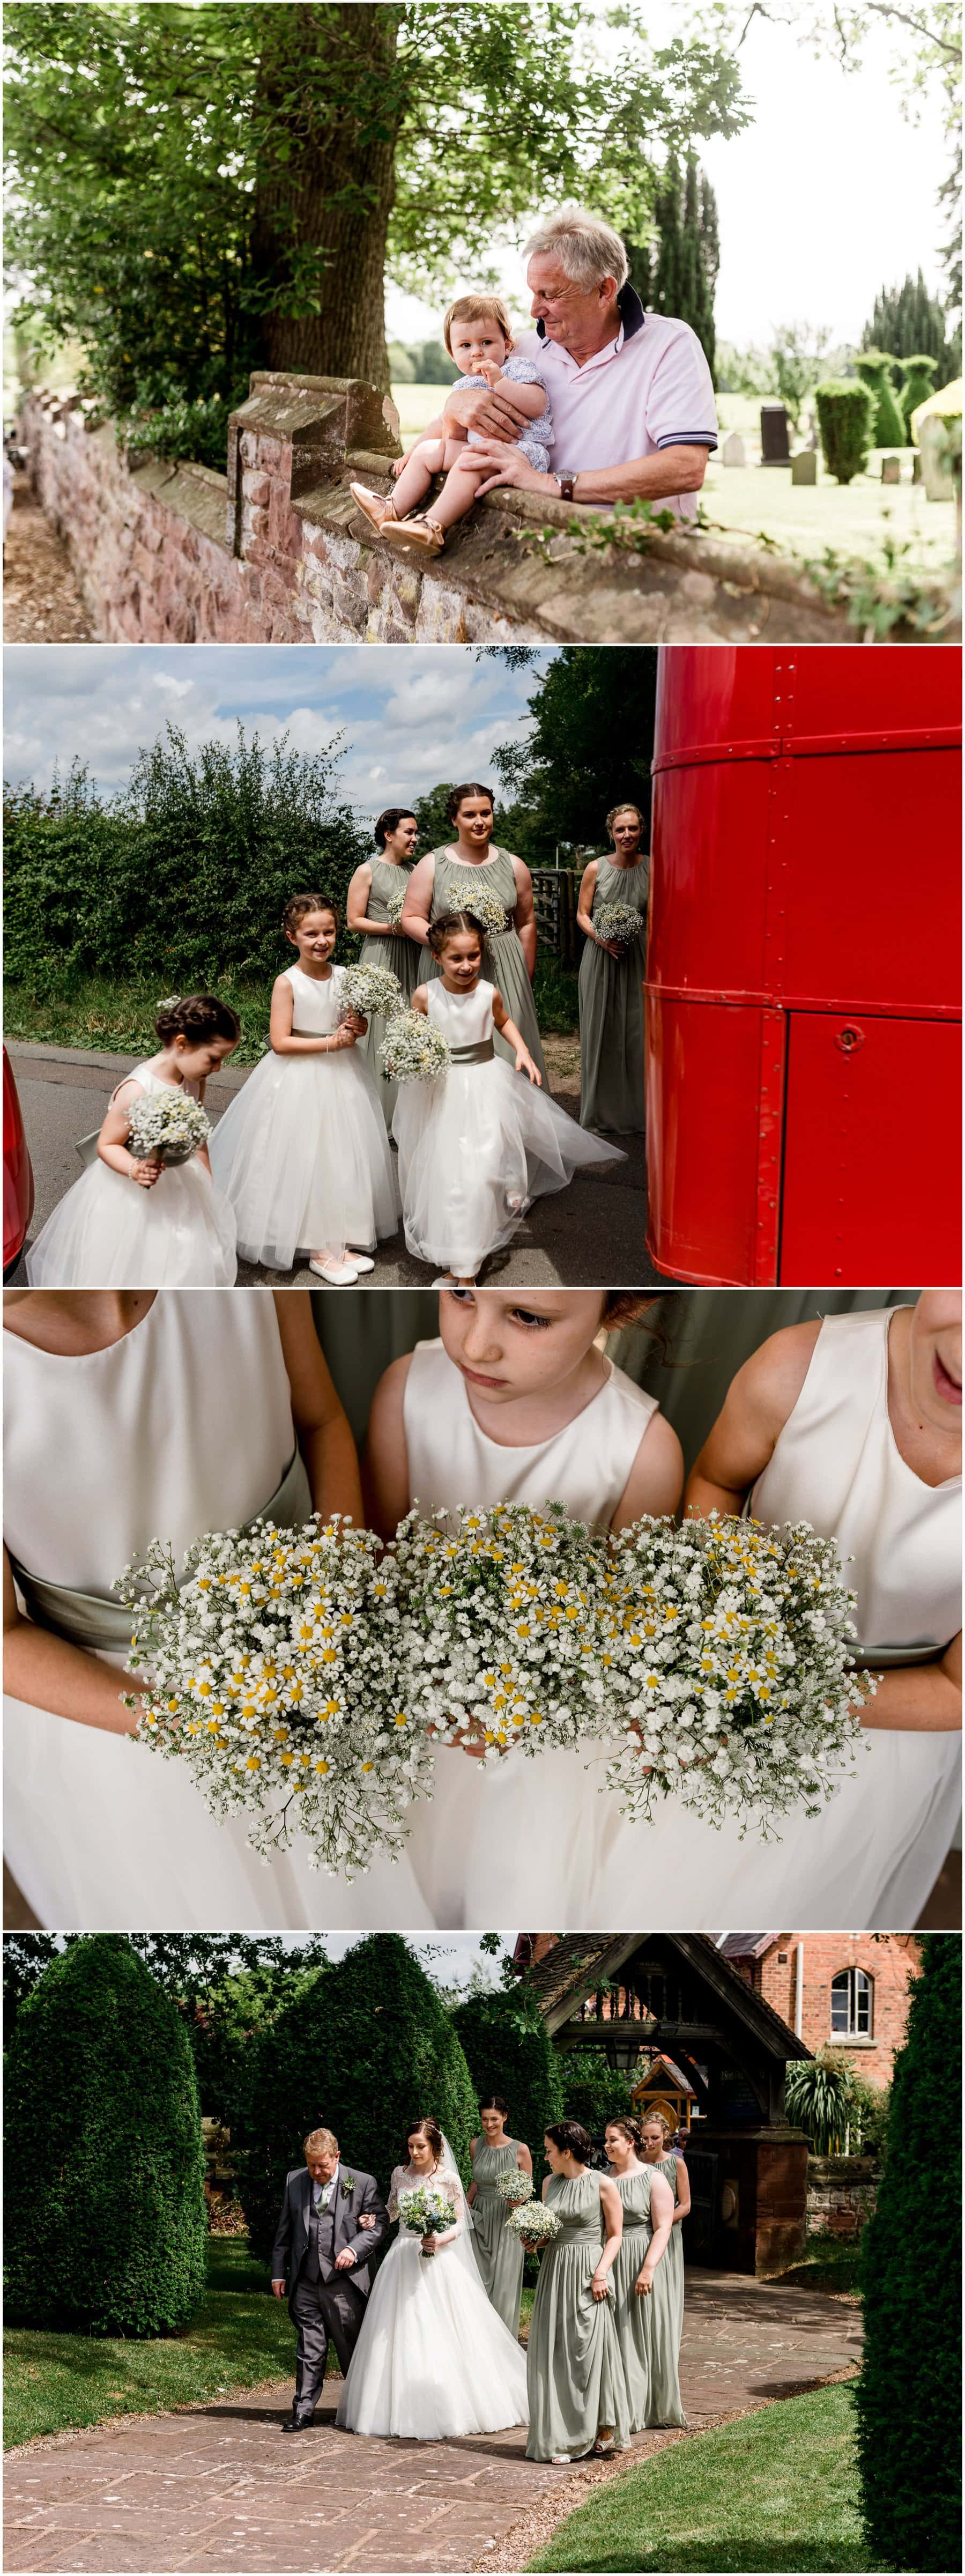 Ffion and Hefin's beautiful, elegant summer wedding at Ten Dwr Hall in Llangollen, Wales with wild flowers and sage colours by West Midlands and Wales Wedding photographer Lisa Carpenter Photography, specialising in cool, contemporary wedding photos. Brides arrival at church.